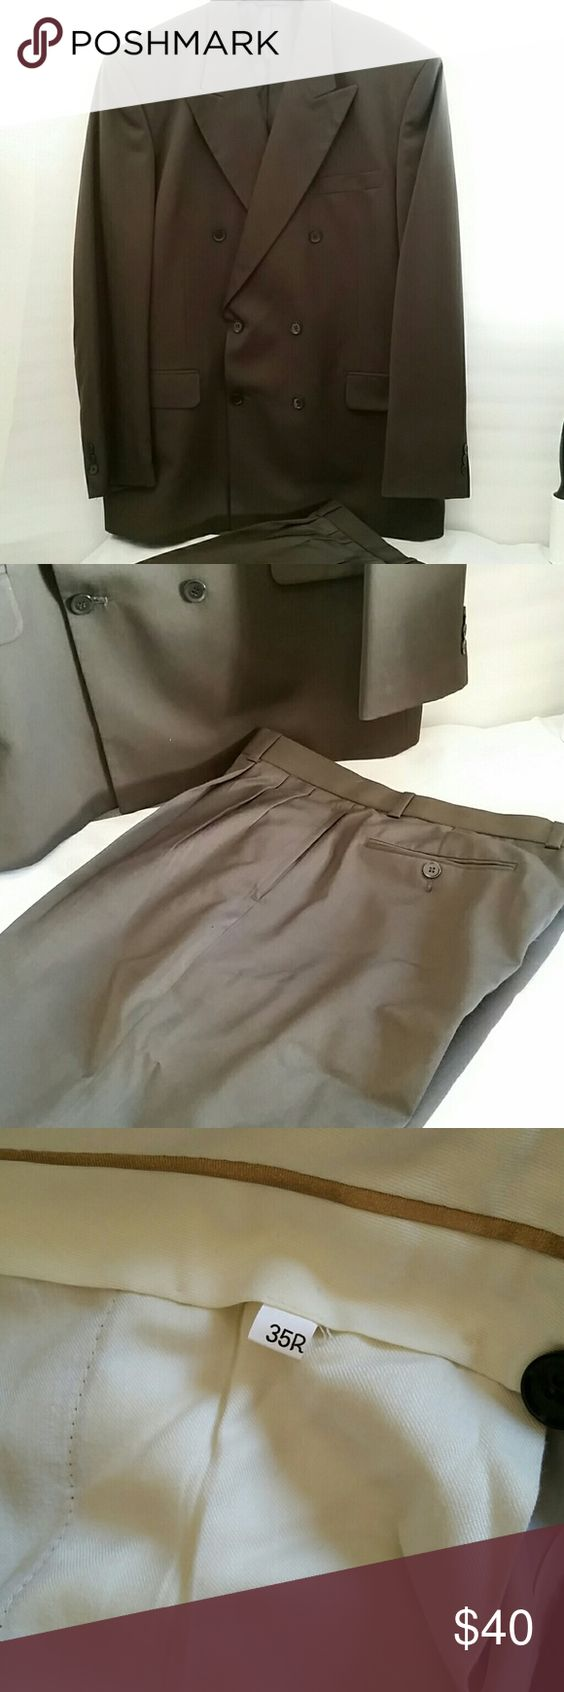 So Ho  collection 's suit Top size is 42R. Pants are 35R. Color is kind of military green.  Worn once. In excellent condition. SoHo Suits & Blazers Suits